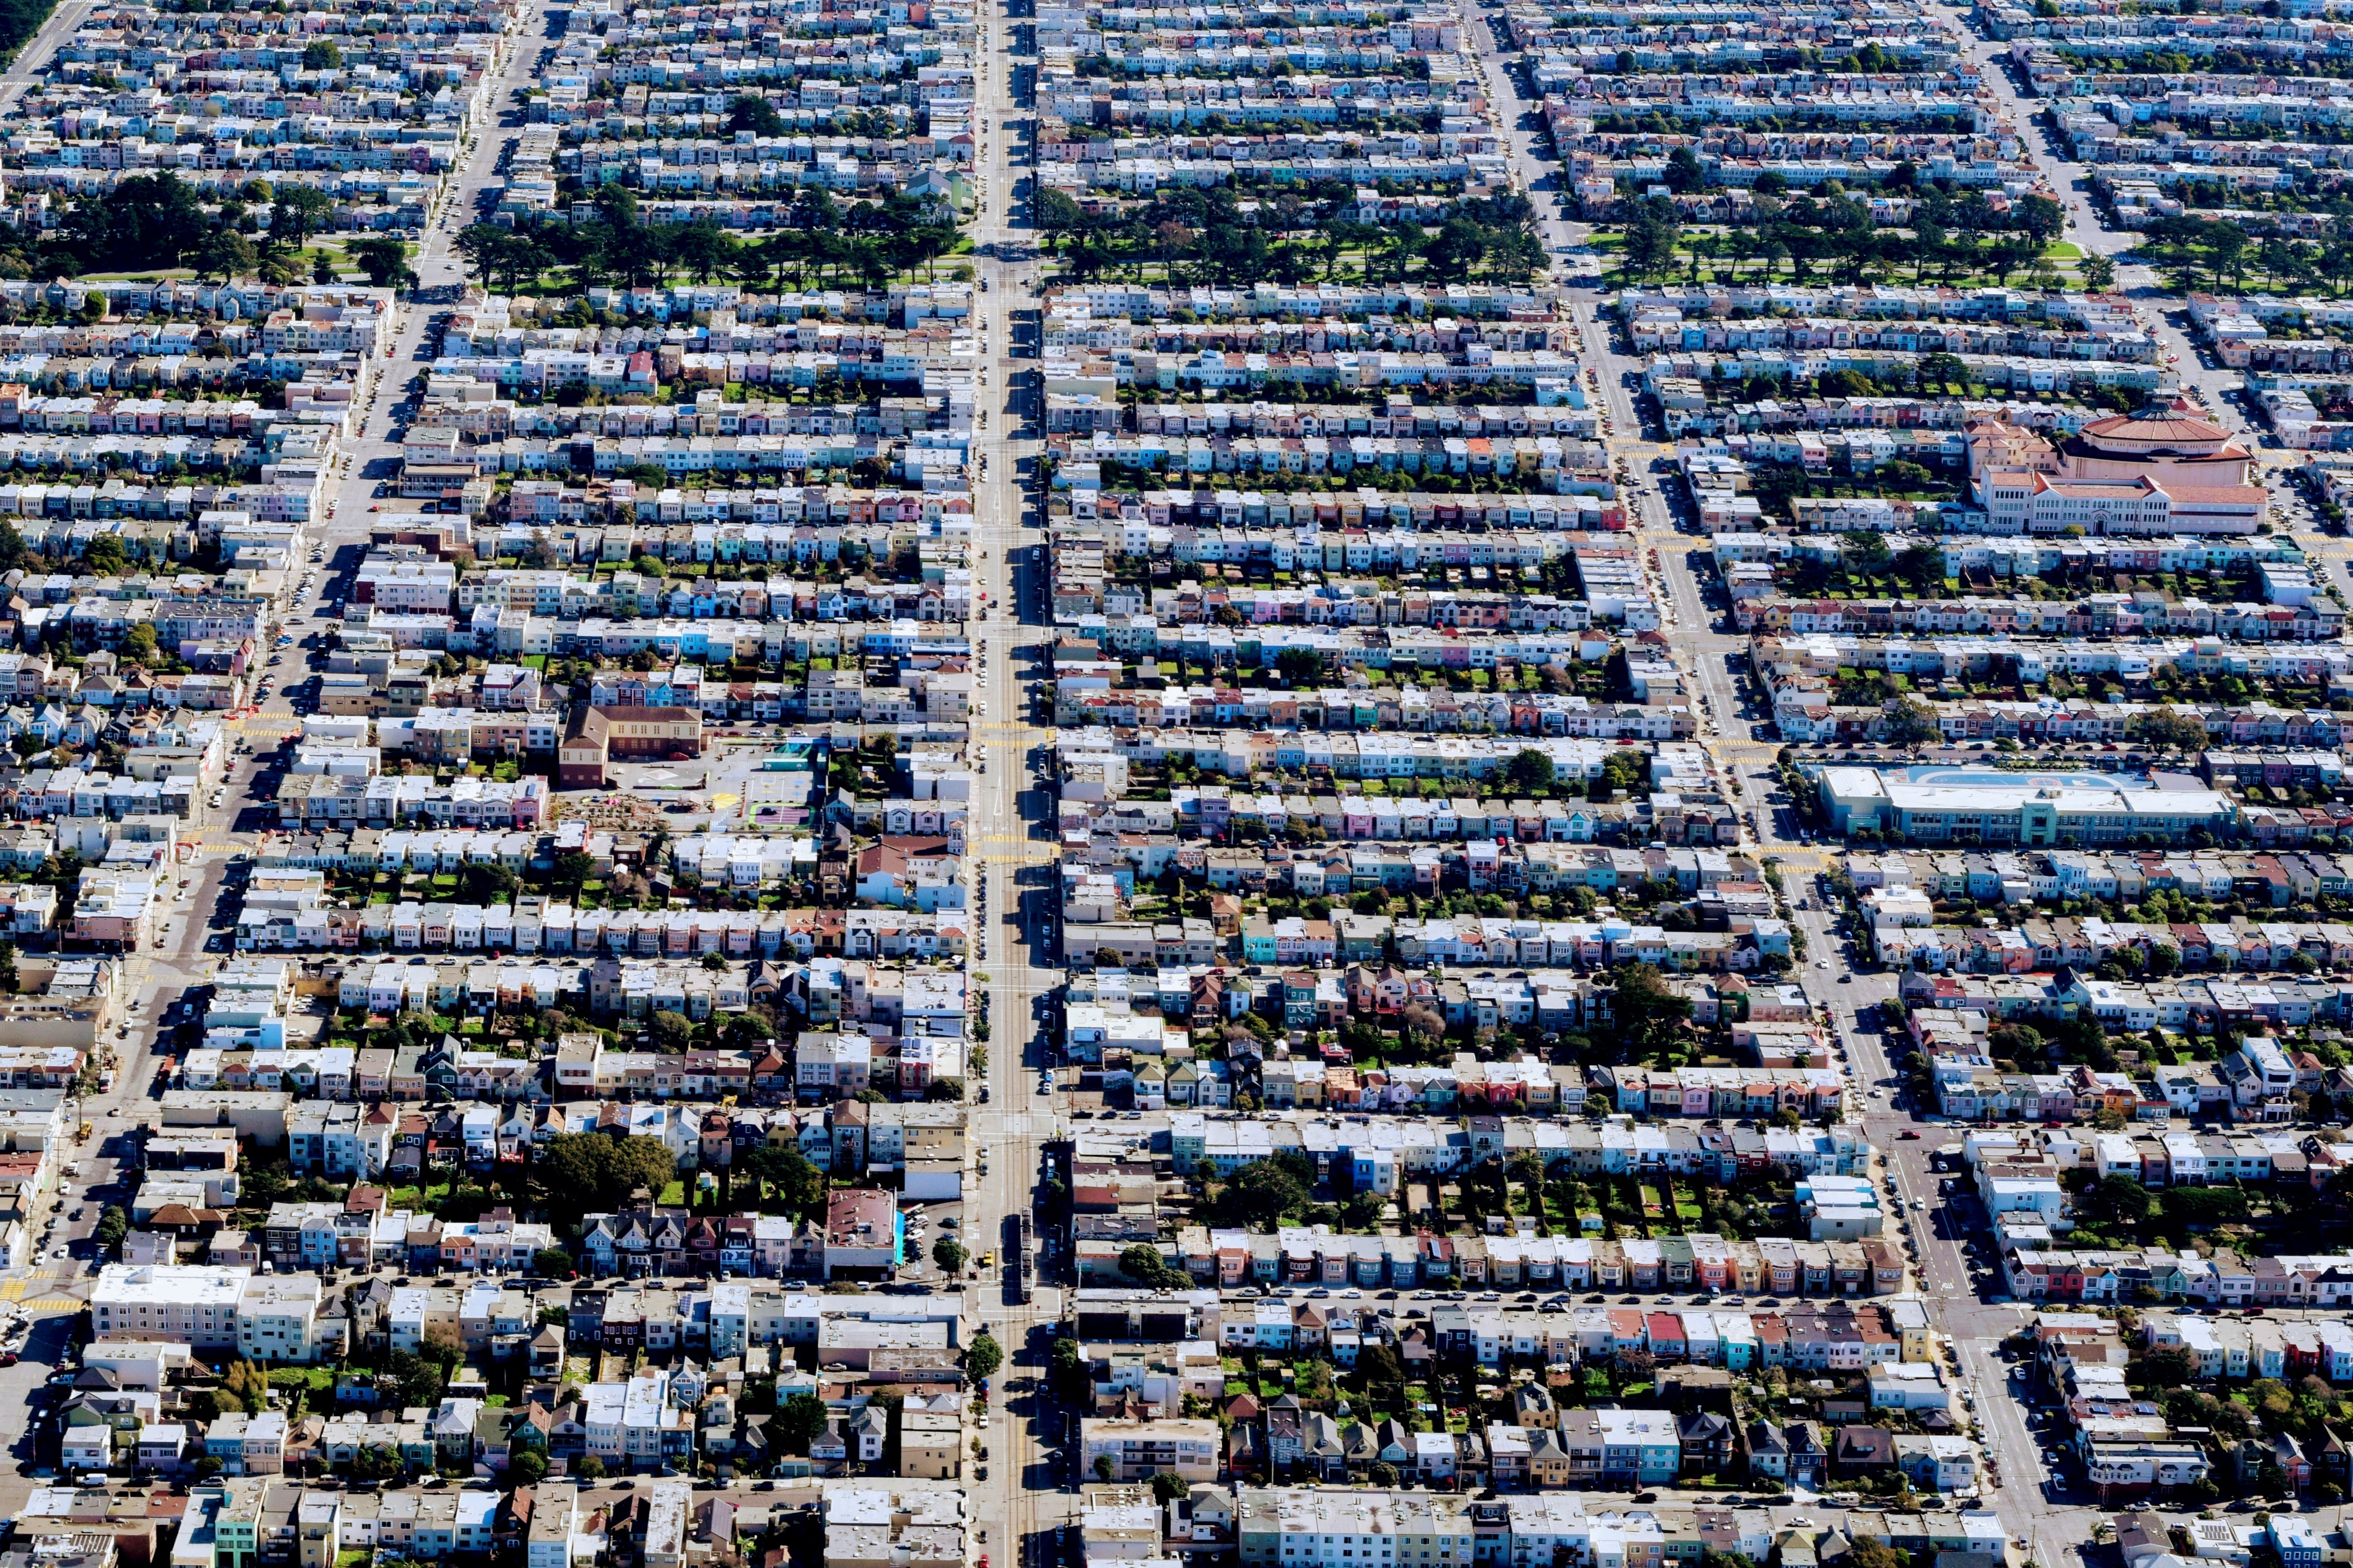 The view of the compact clusters of houses in a township from a drone.